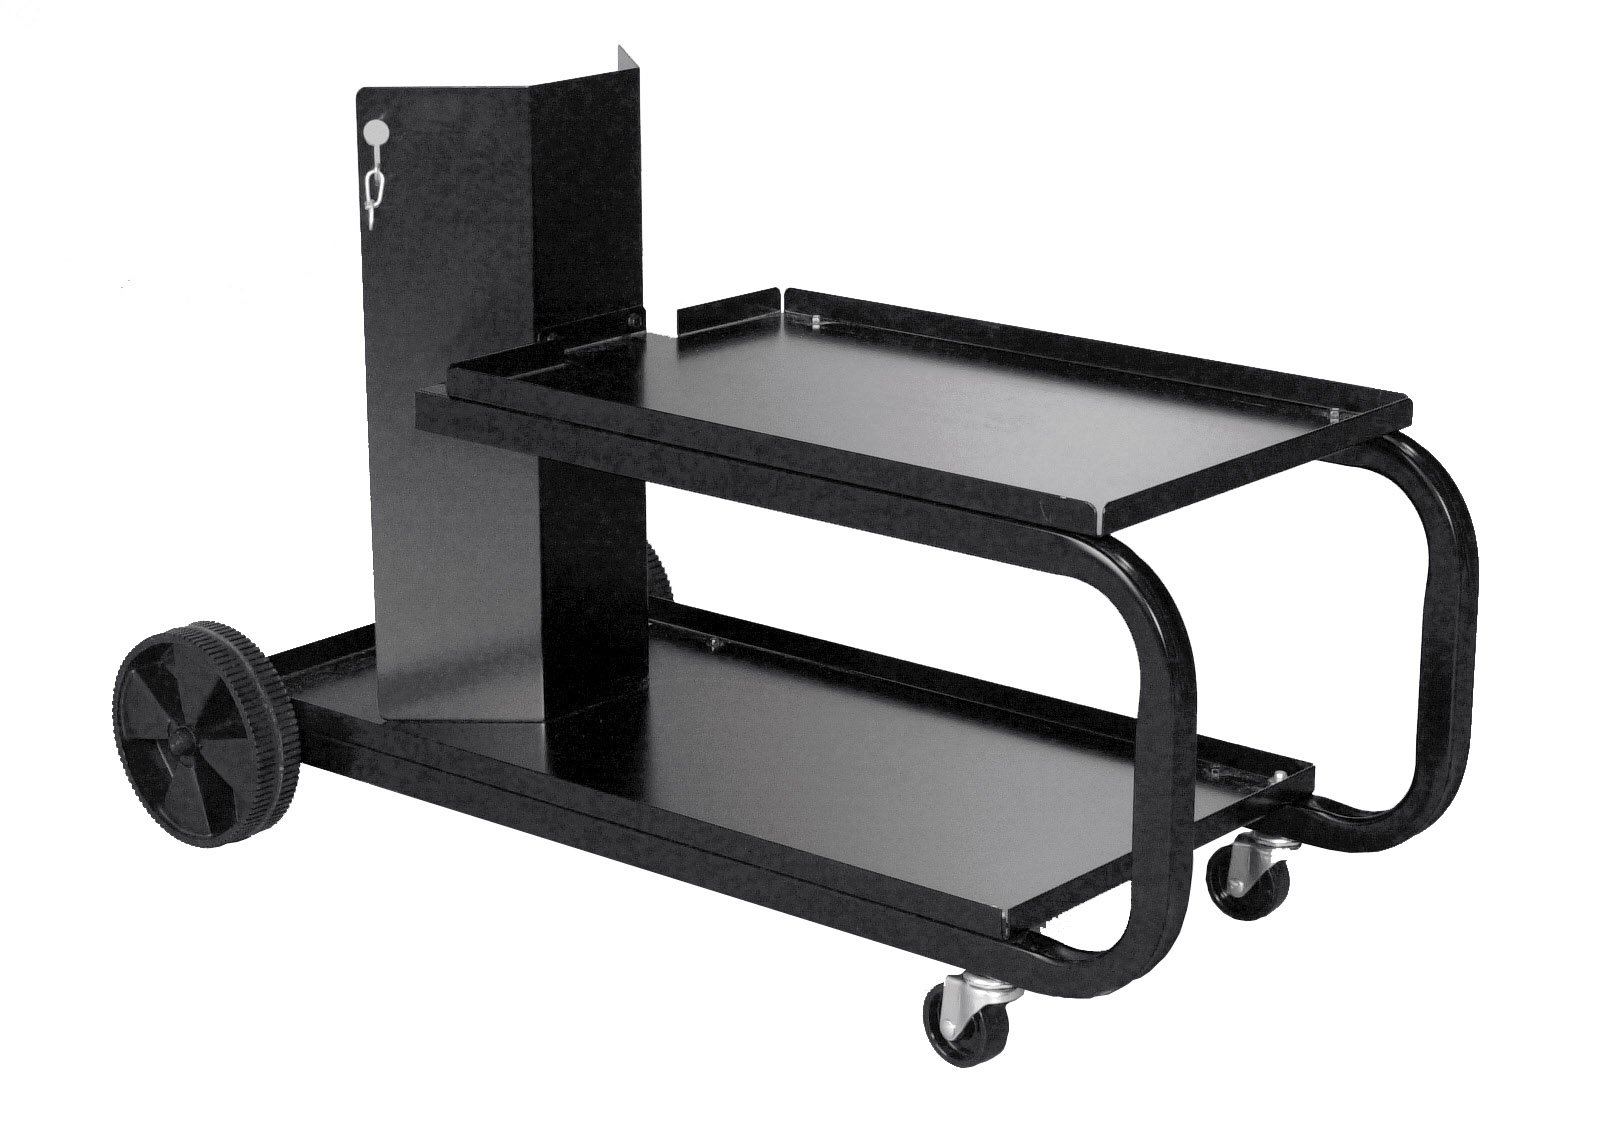 Hobart 194776 Small Running Gear/Cylinder Rack by Hobart